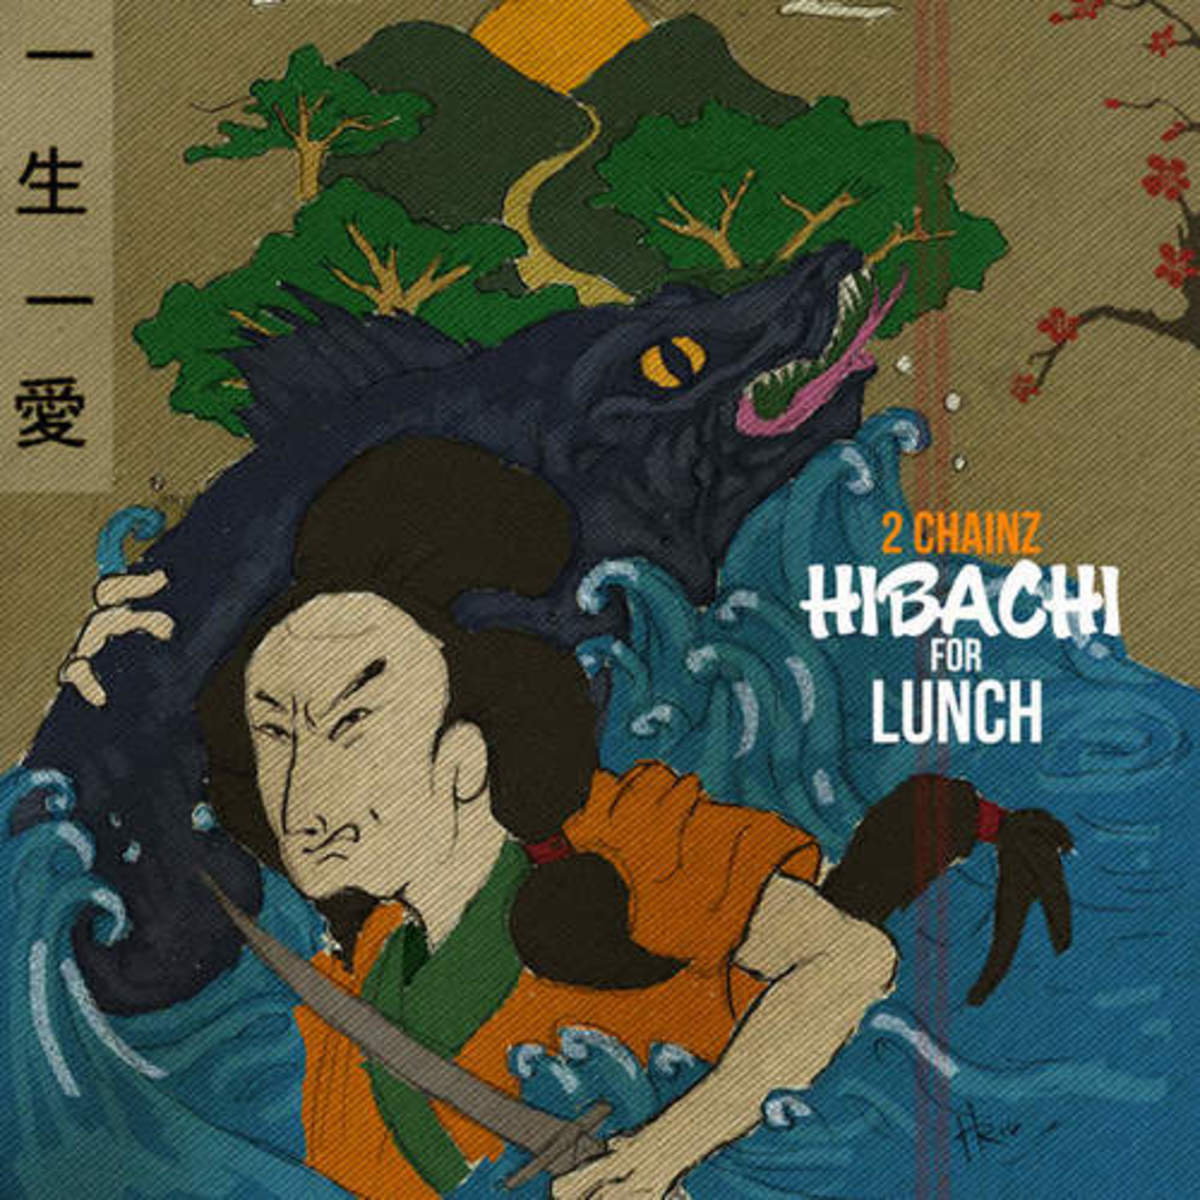 2-chainz-hibachi-for-lunch.jpeg